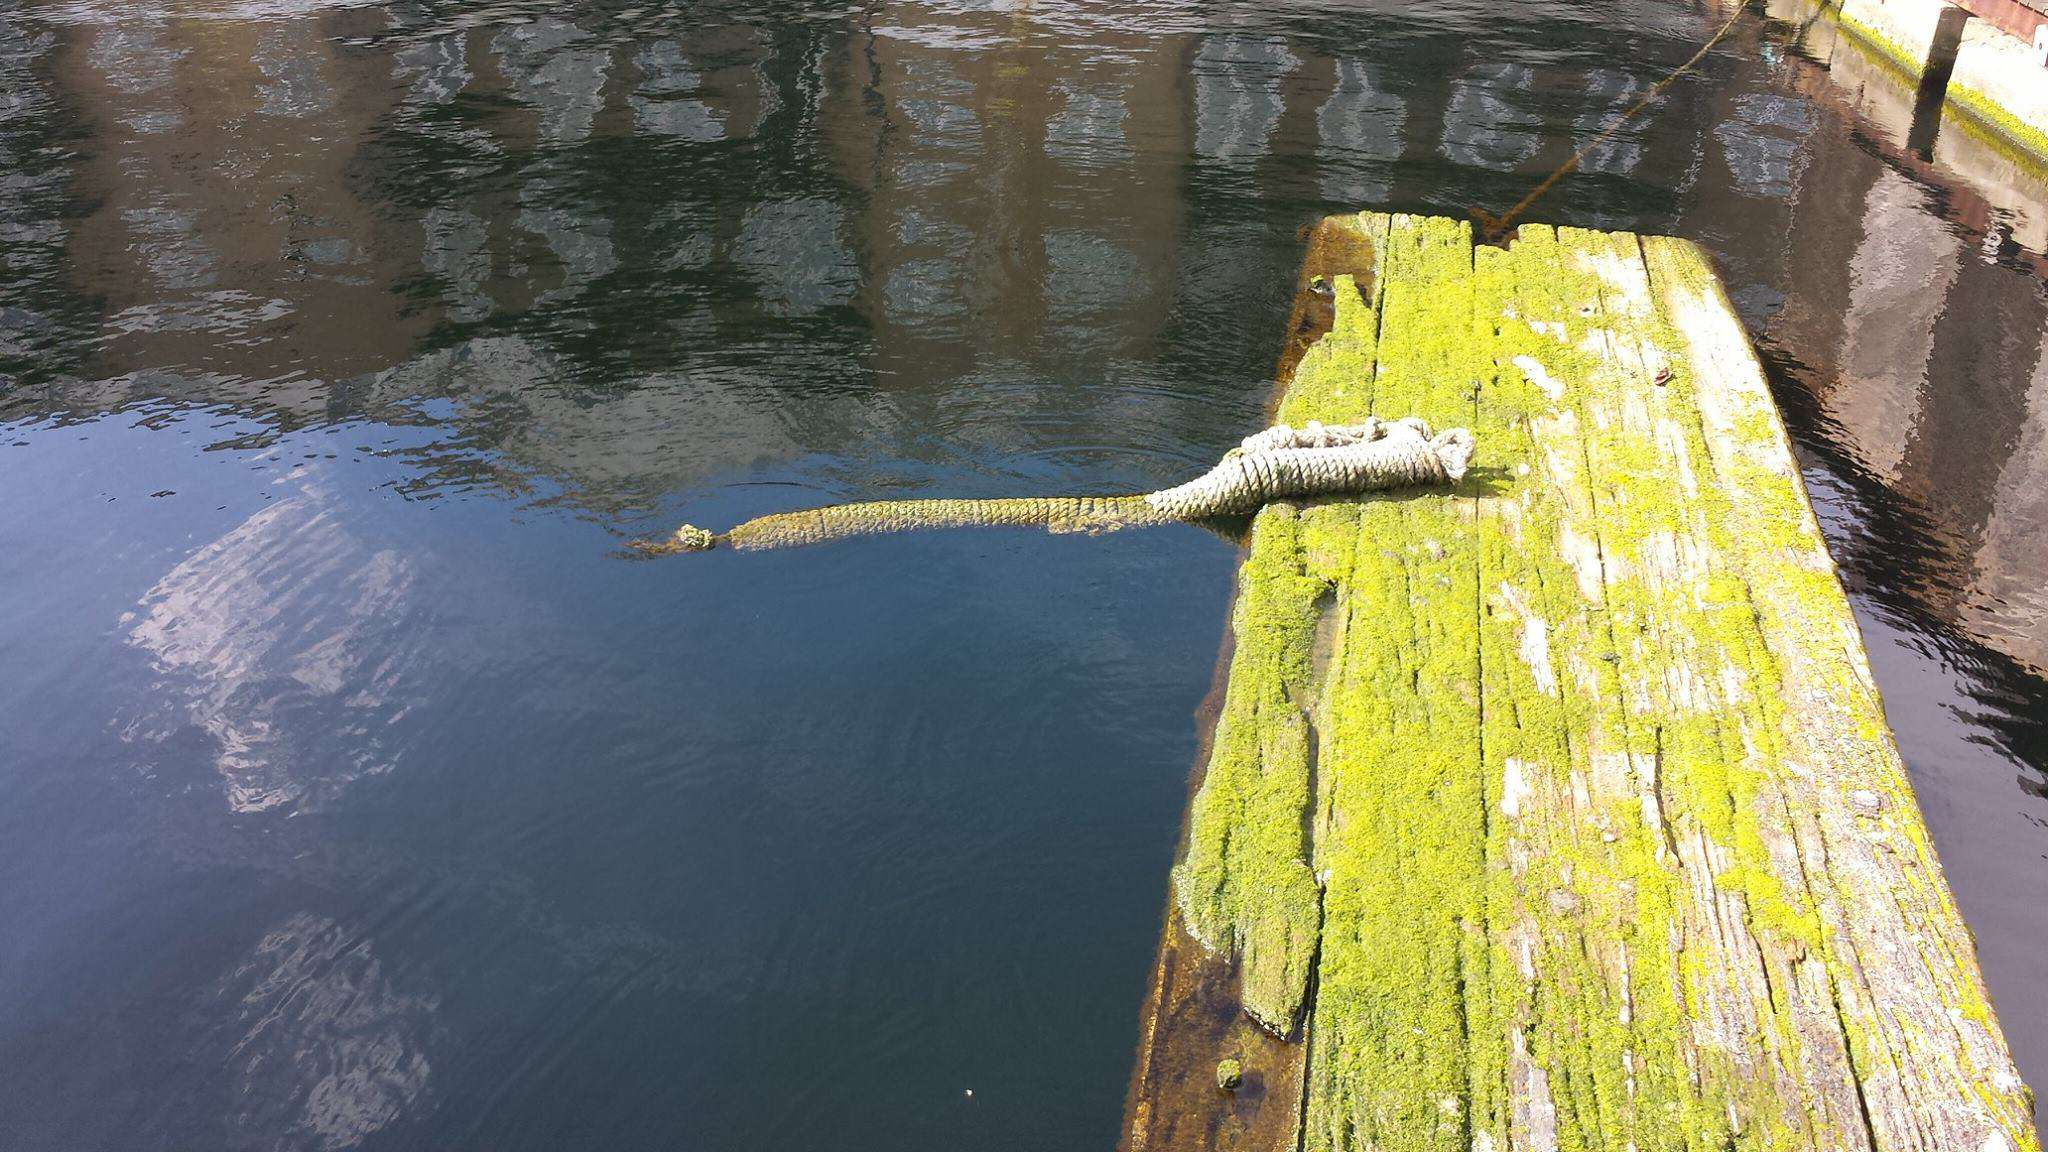 Britains First Wild Crocodile Spotted In River 13559113 1182010251843579 5619429096940091575 o